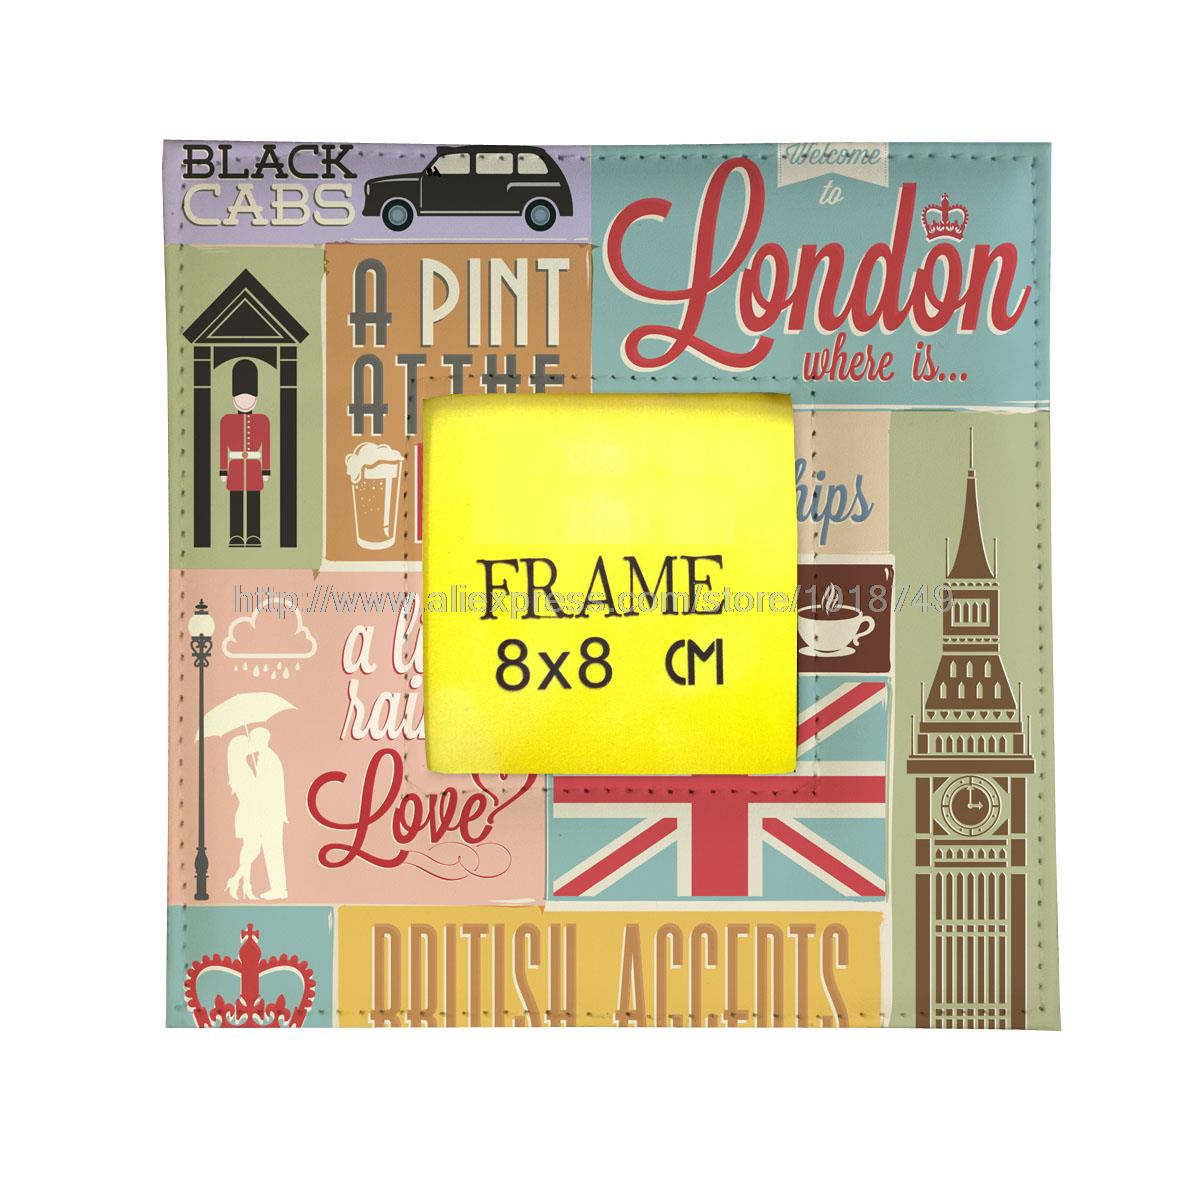 Buy frame picture london and get free shipping on AliExpress.com